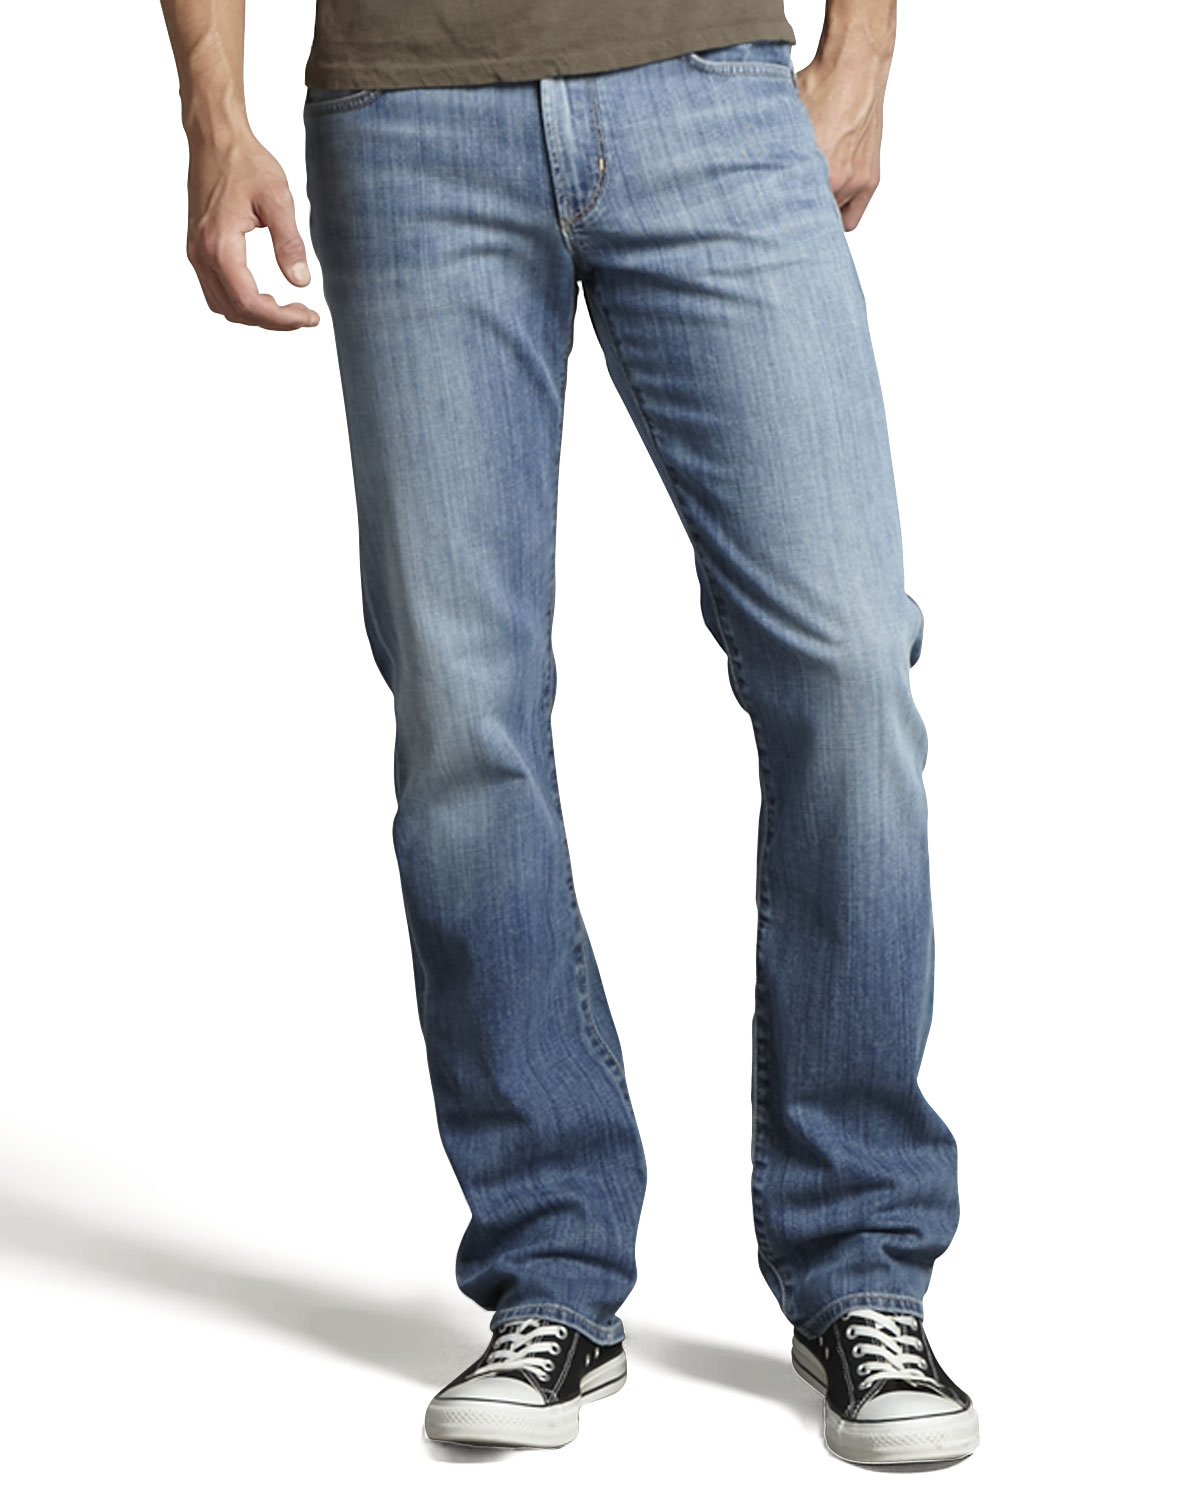 Mens Sid Vanity Jeans   Citizens of Humanity   Vanity (36)